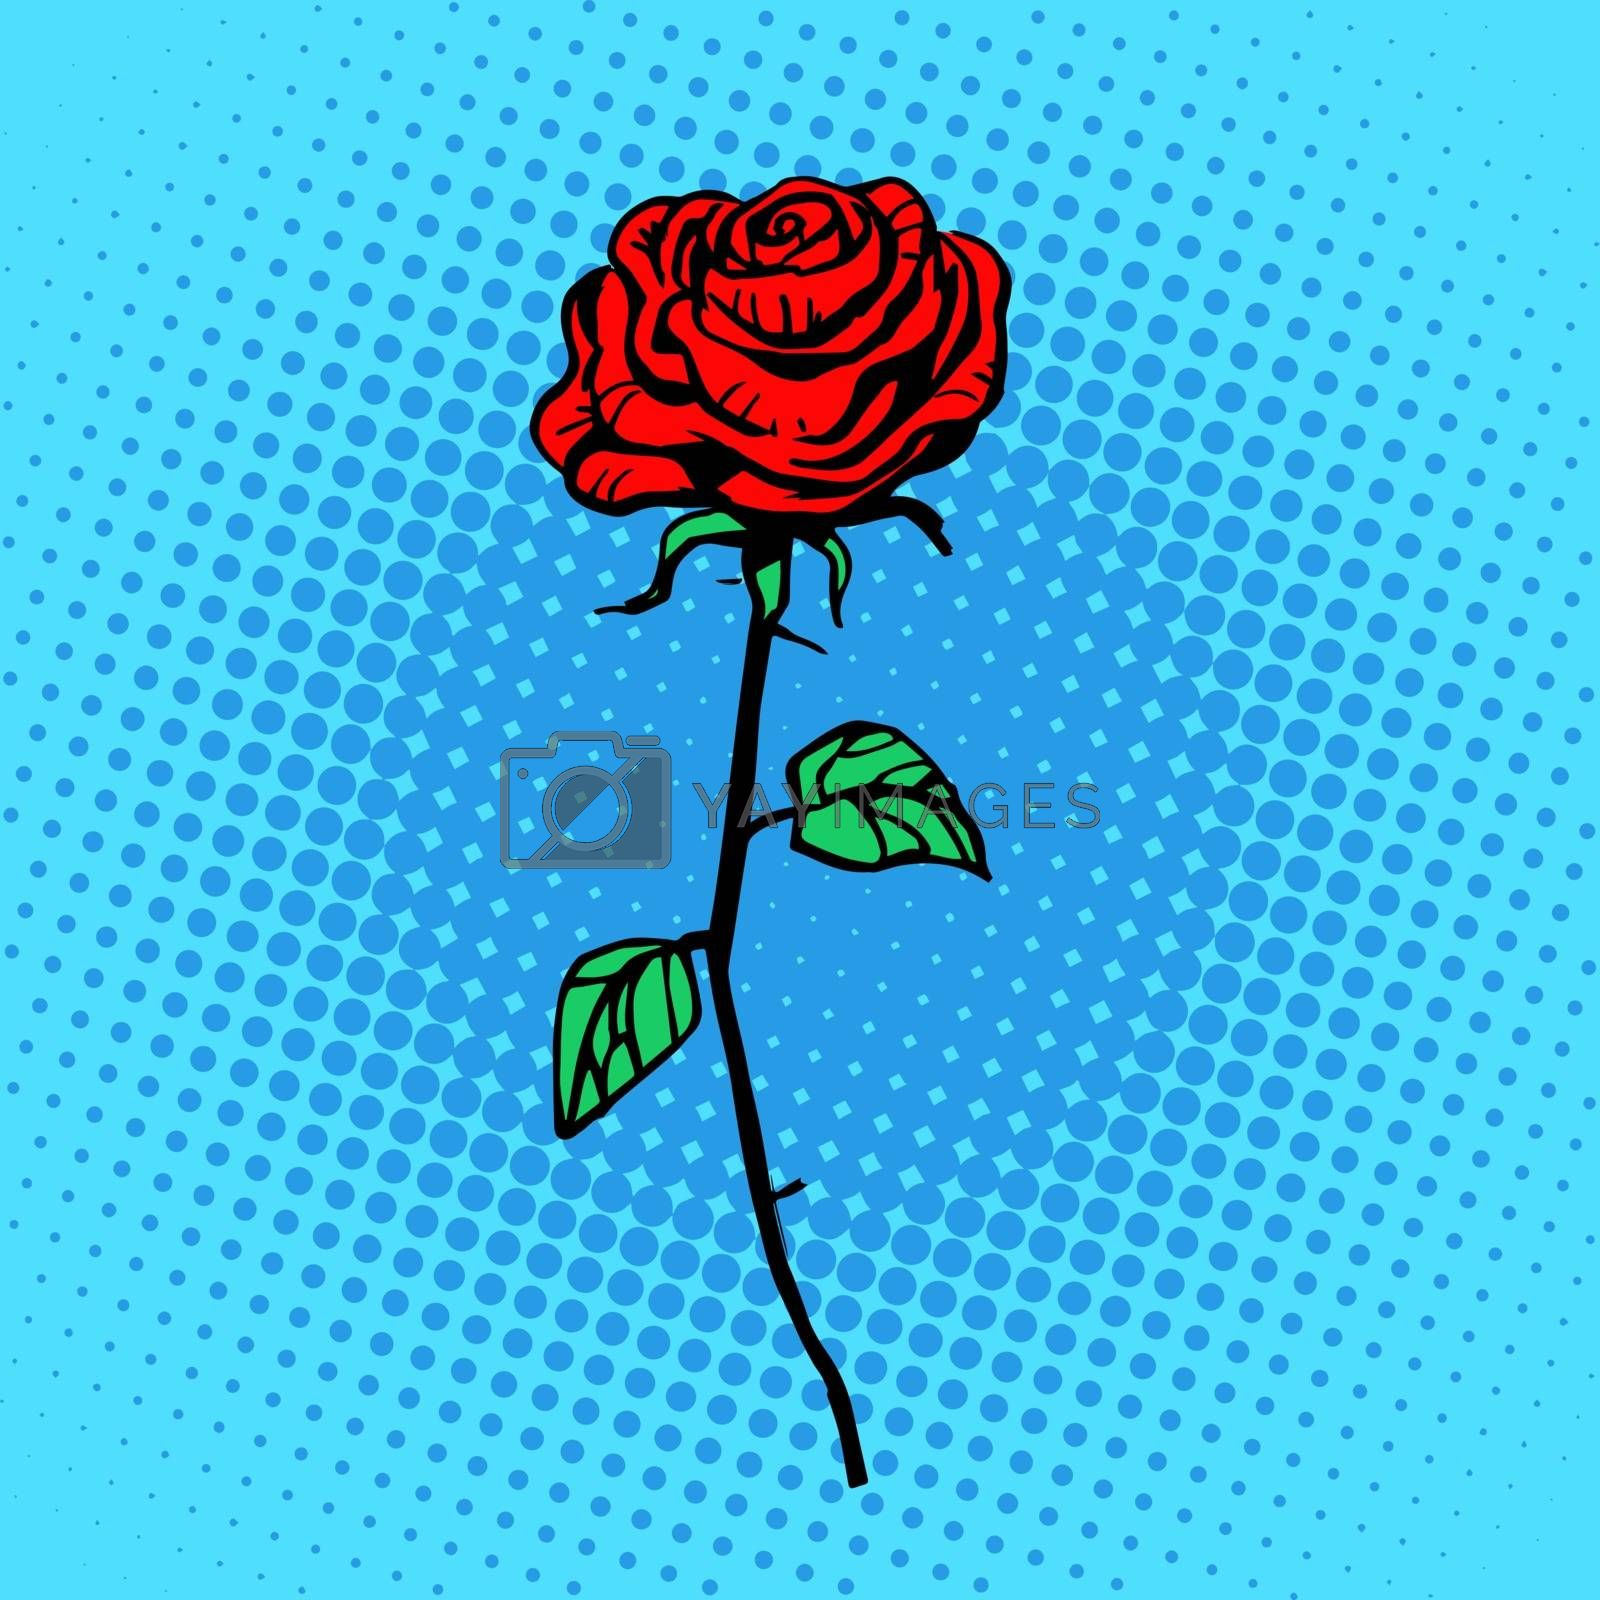 Royalty free image of Flower red rose stem with thorns by studiostoks